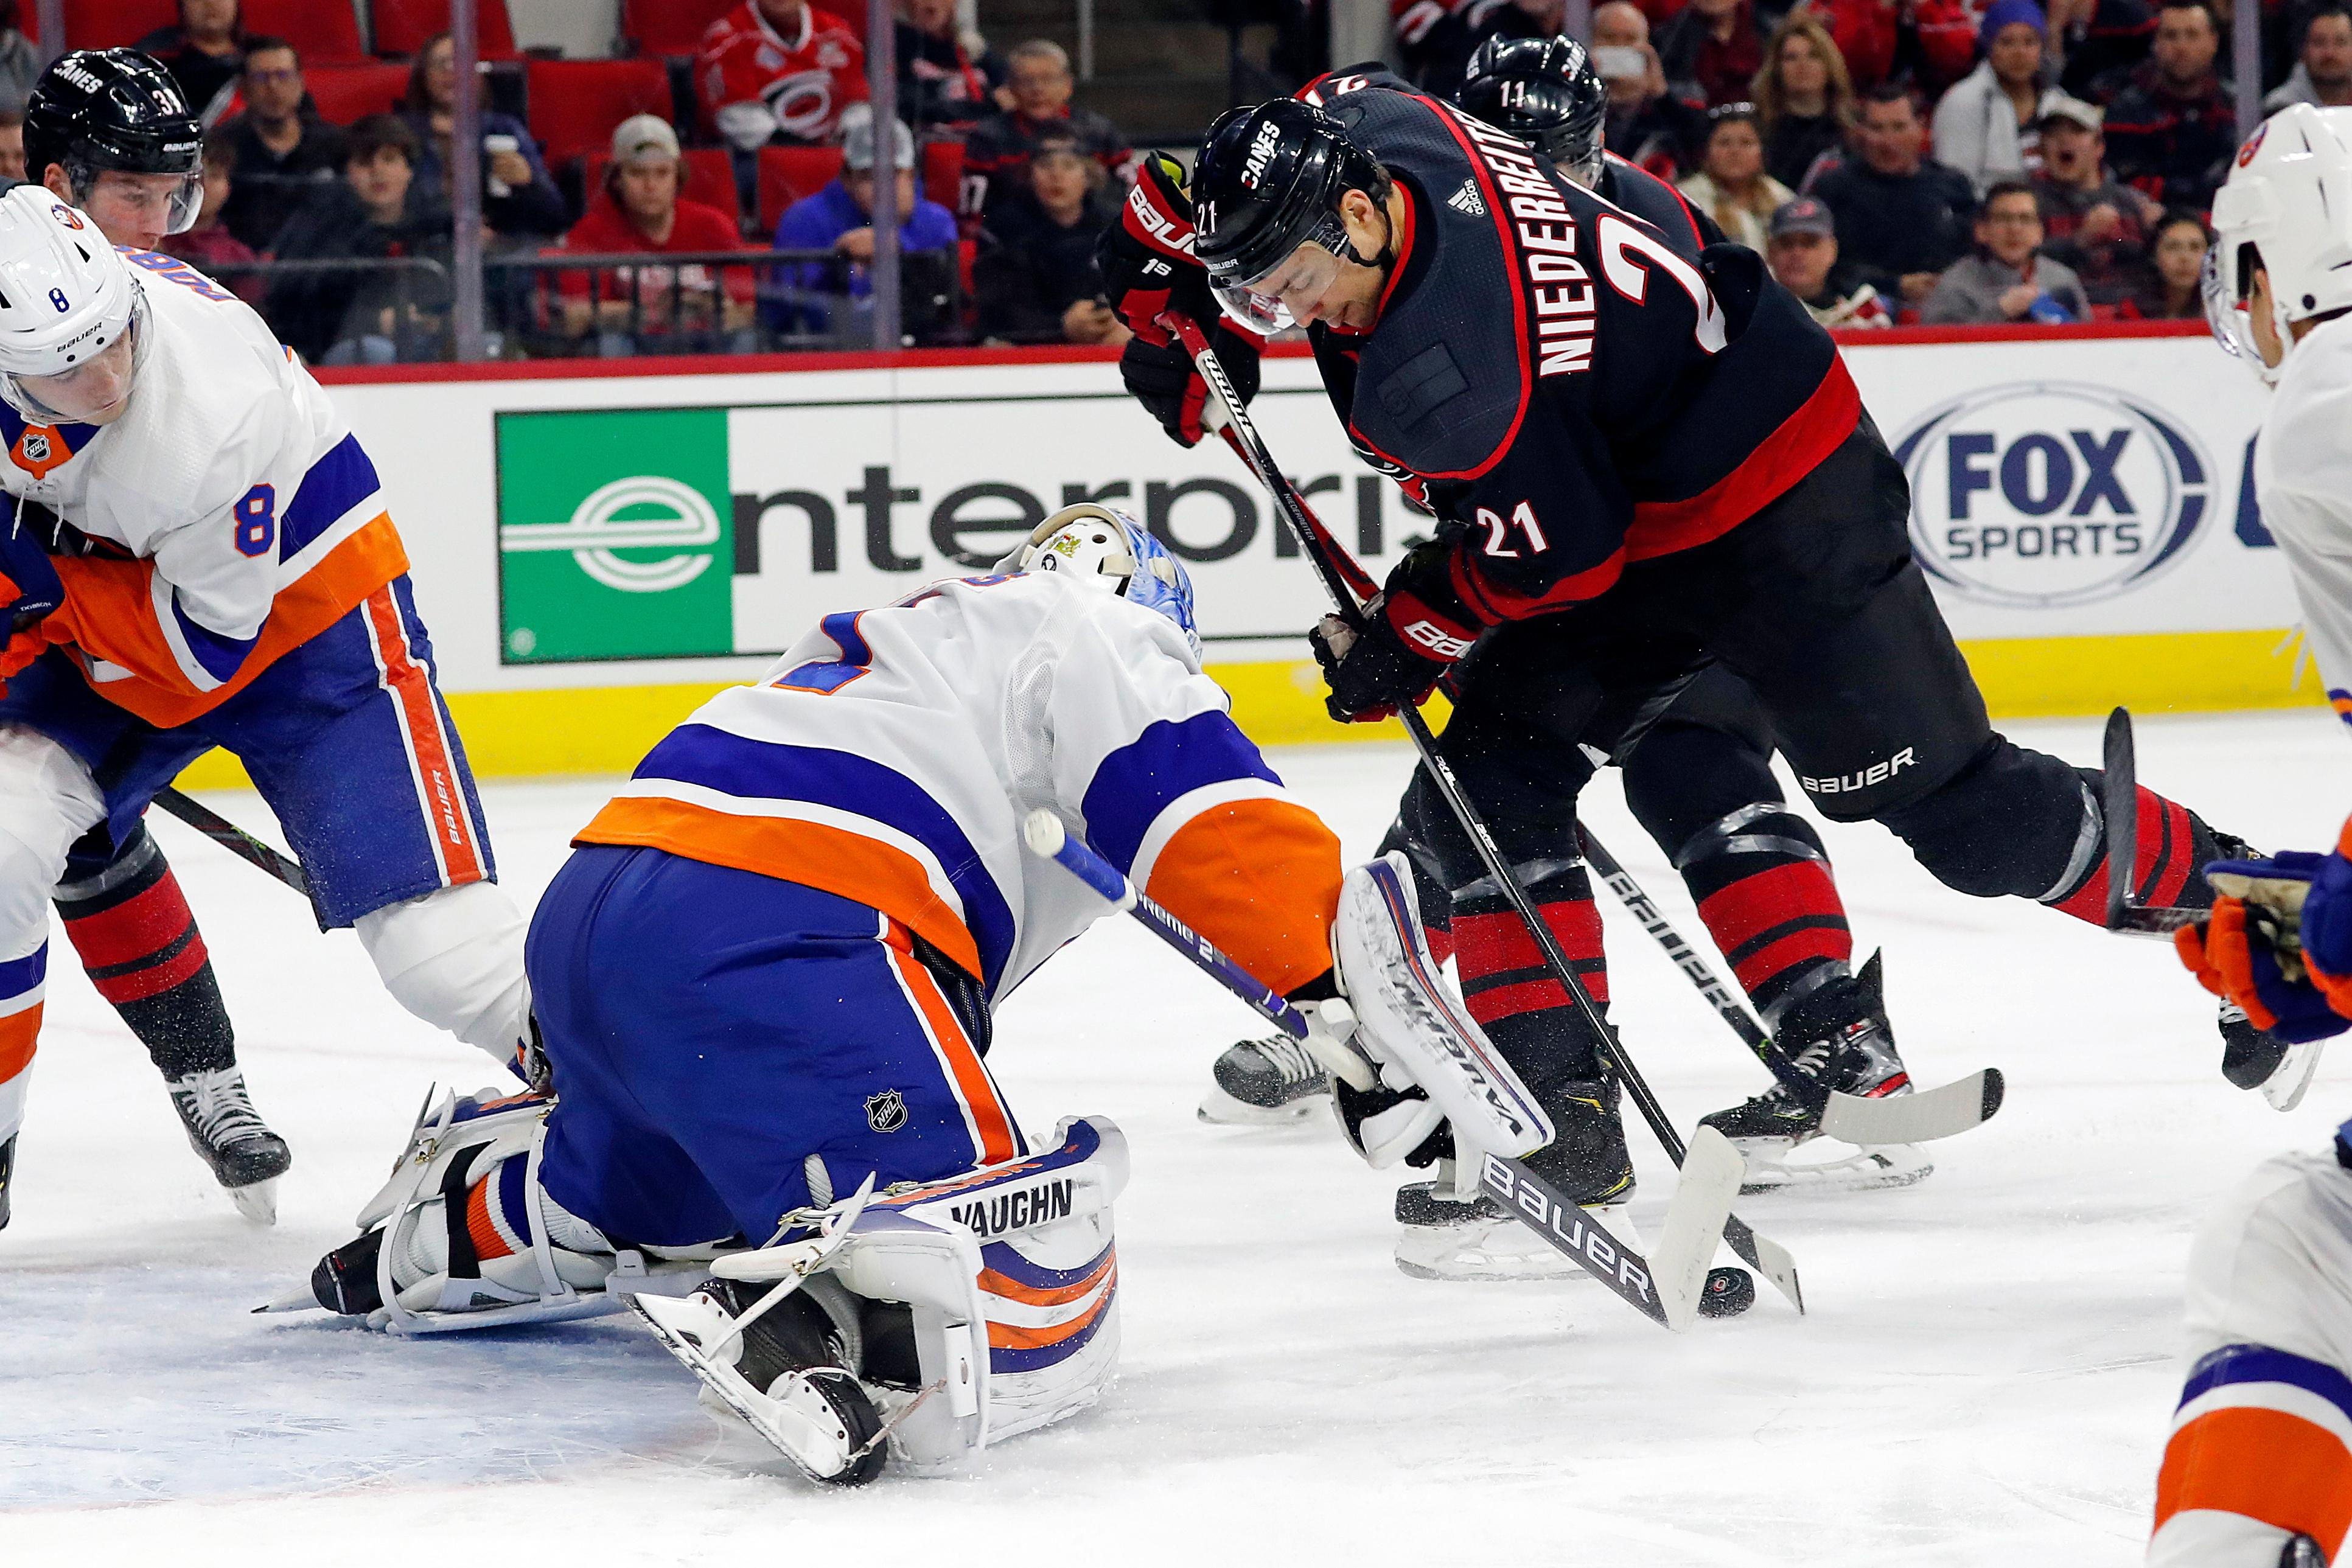 Carolina Hurricanes' Nino Niederreiter (21), of Switzerland, tries to control the puck in front of New York Islanders goaltender Thomas Greiss (1), of Germany, during the first period of an NHL hockey game in Raleigh, N.C., Sunday, Jan. 19, 2020. (AP Photo/Karl B DeBlaker)